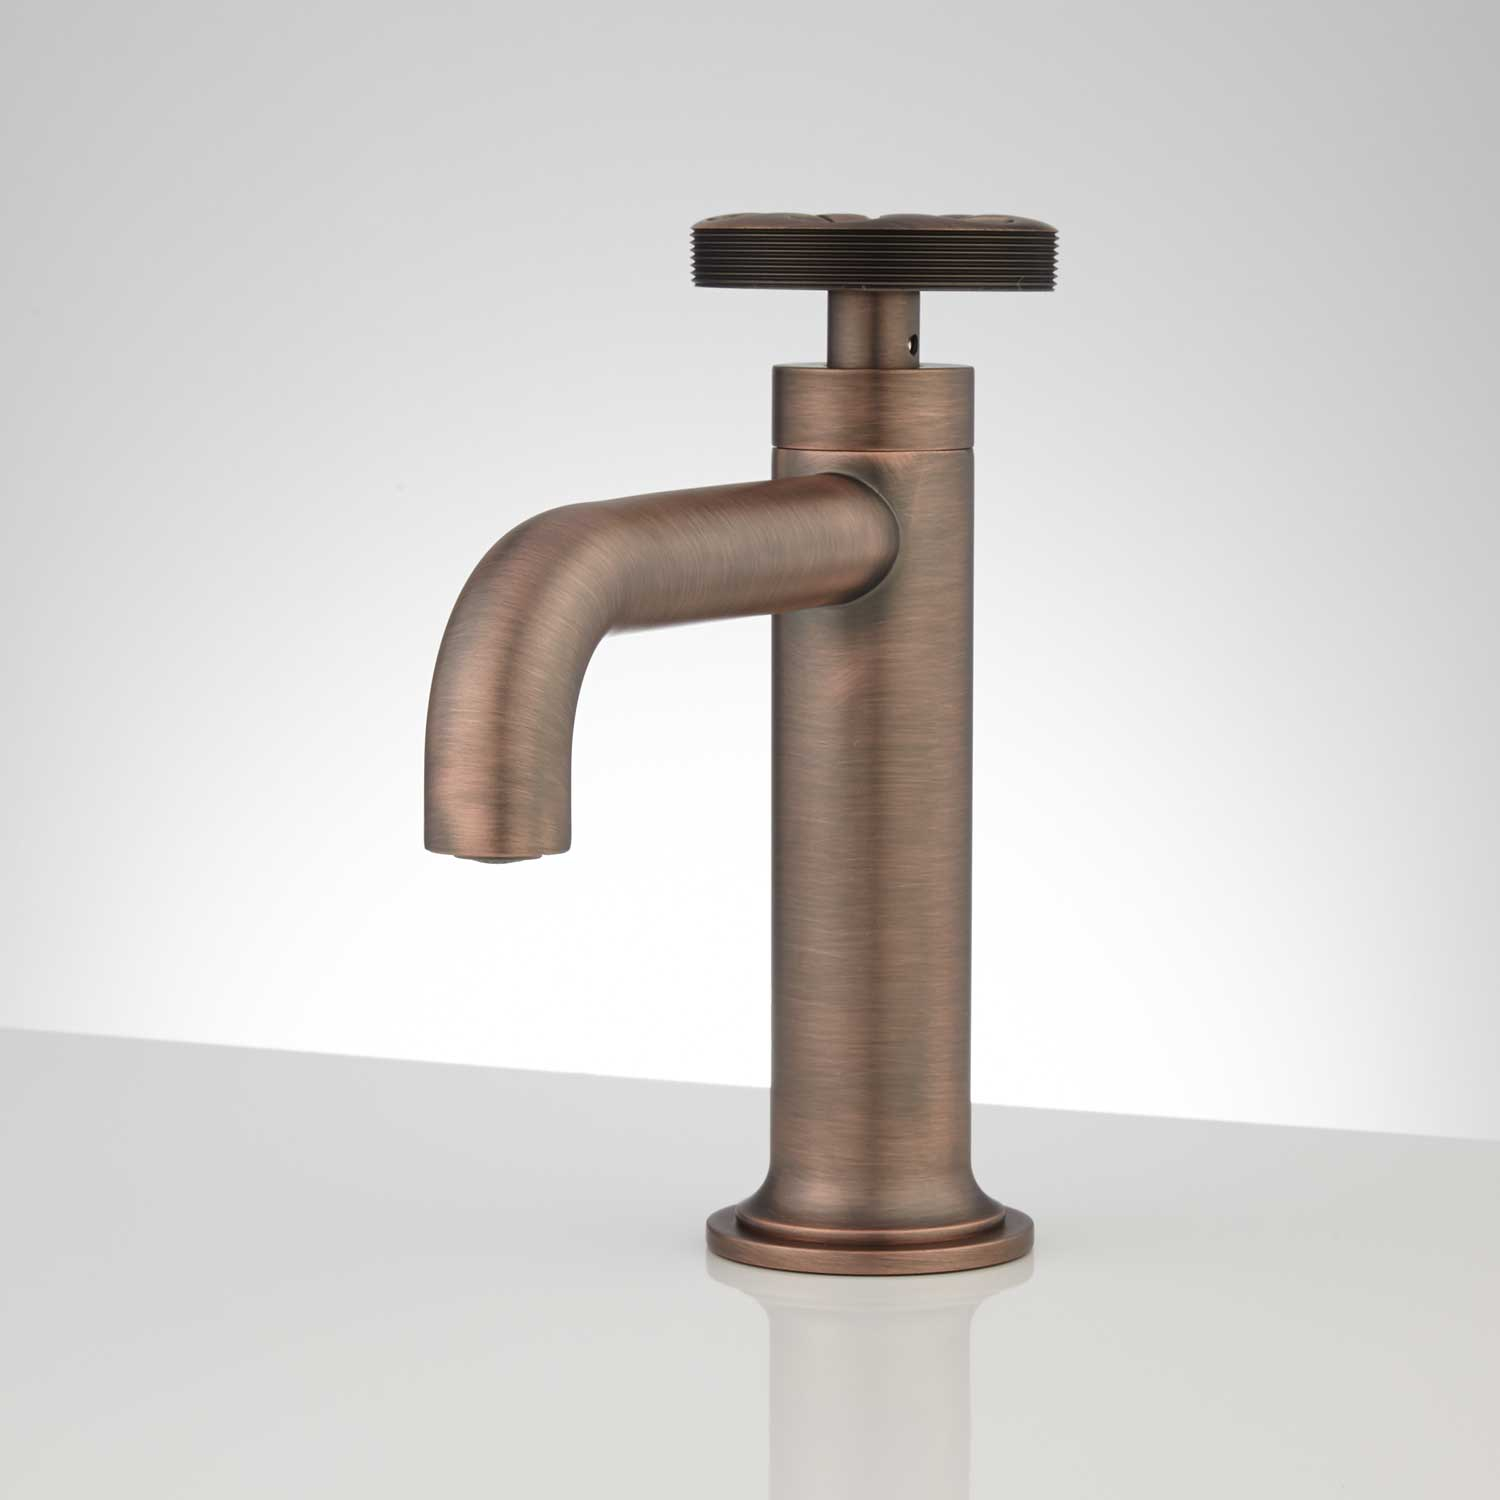 Bathroom Solid Brass Faucet Signature Hardware throughout dimensions 1500 X 1500